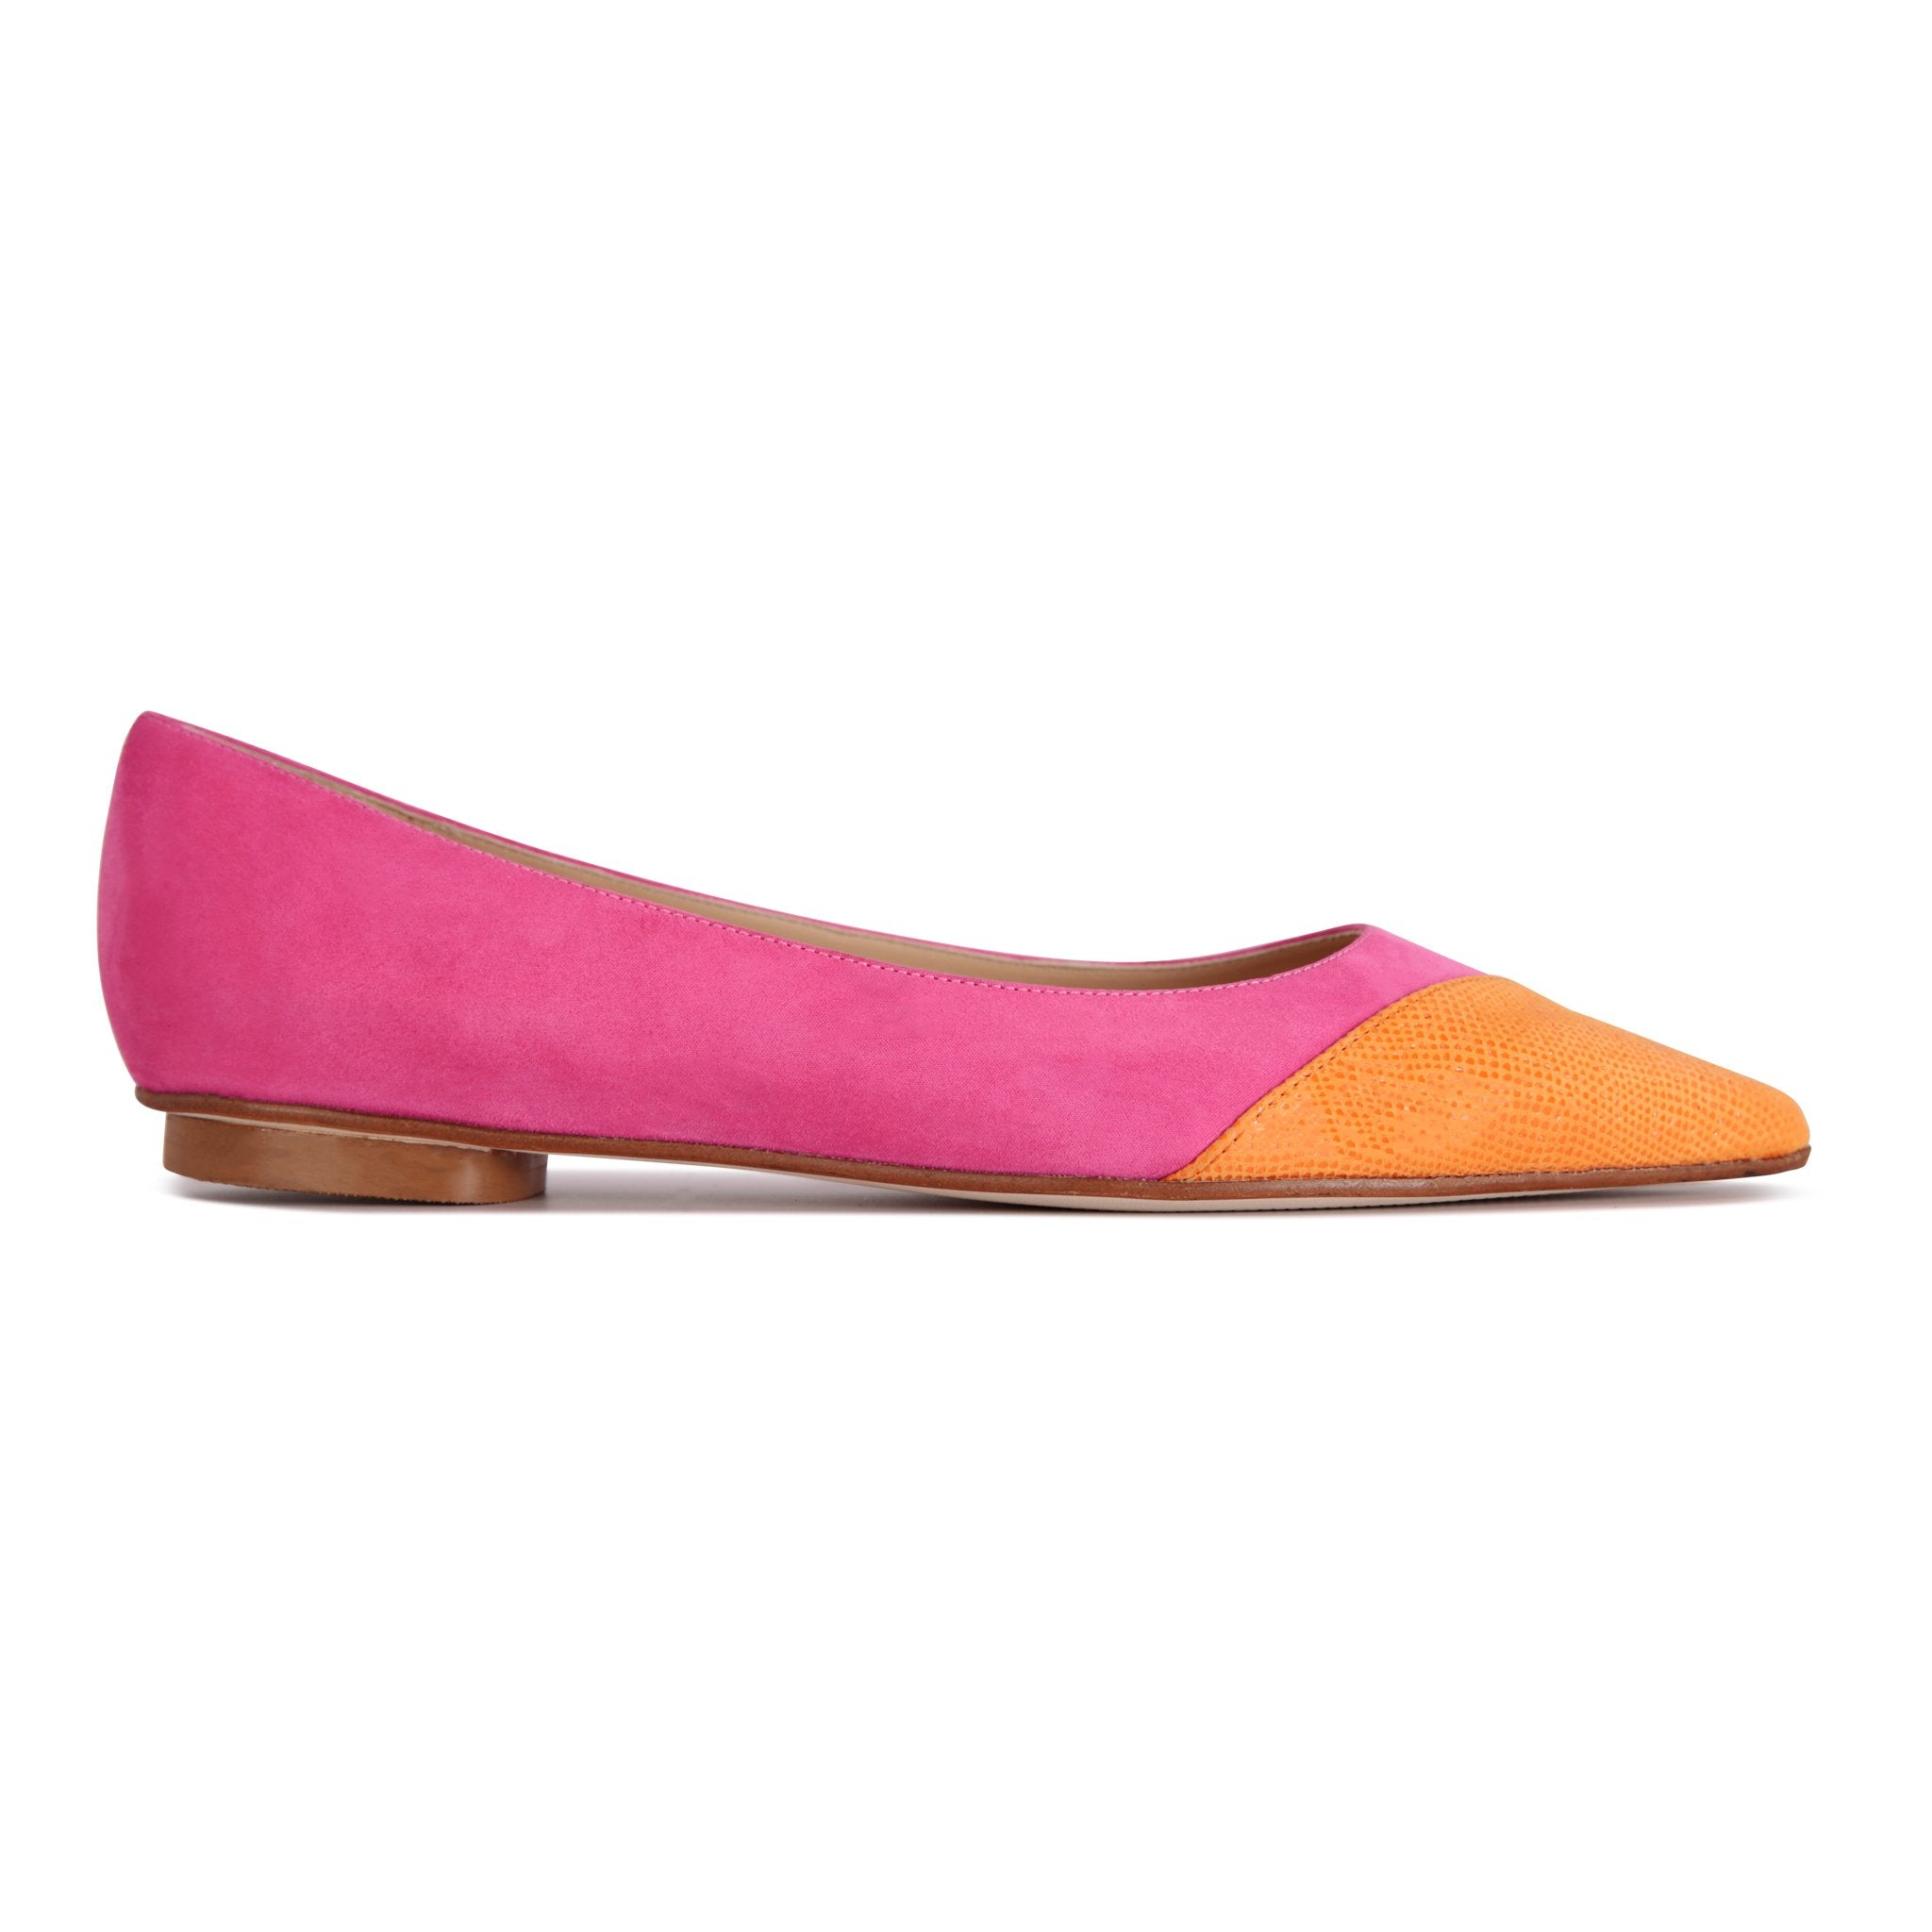 COMO - Hydra Epiphany Pink + Asymmetrical Toe Karung Mandarin, VIAJIYU - Women's Hand Made Sustainable Luxury Shoes. Made in Italy. Made to Order.